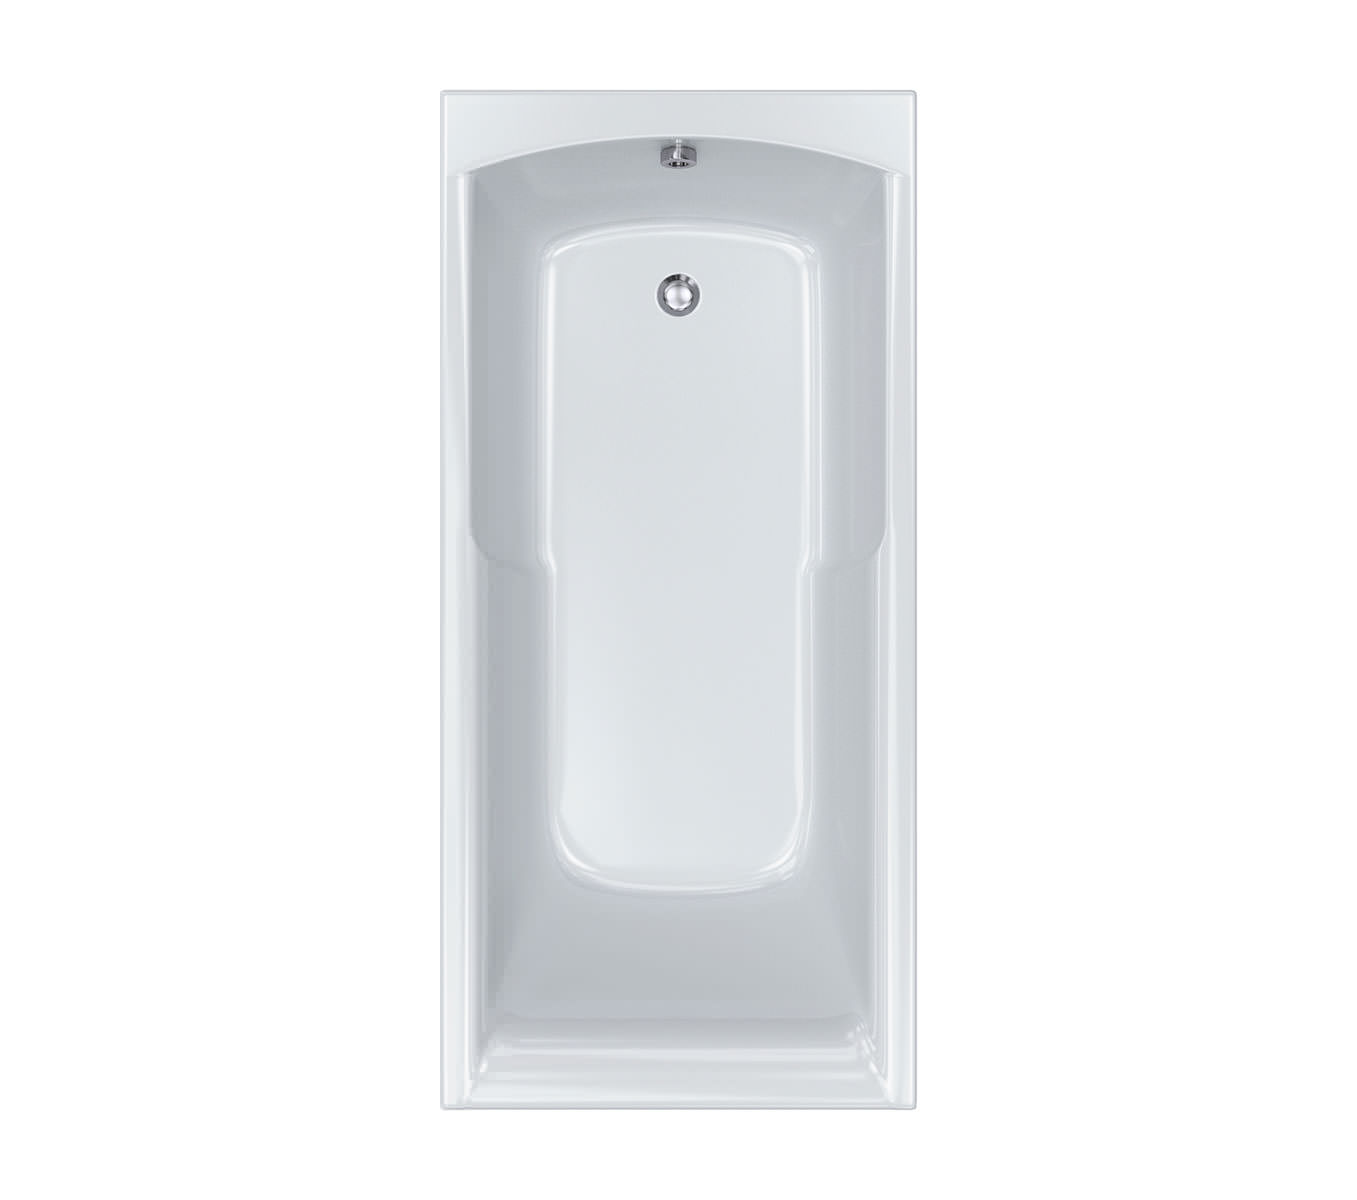 Carron Apex Shower Bath 1700 X 800mm Cabap17080pa Q4 02011